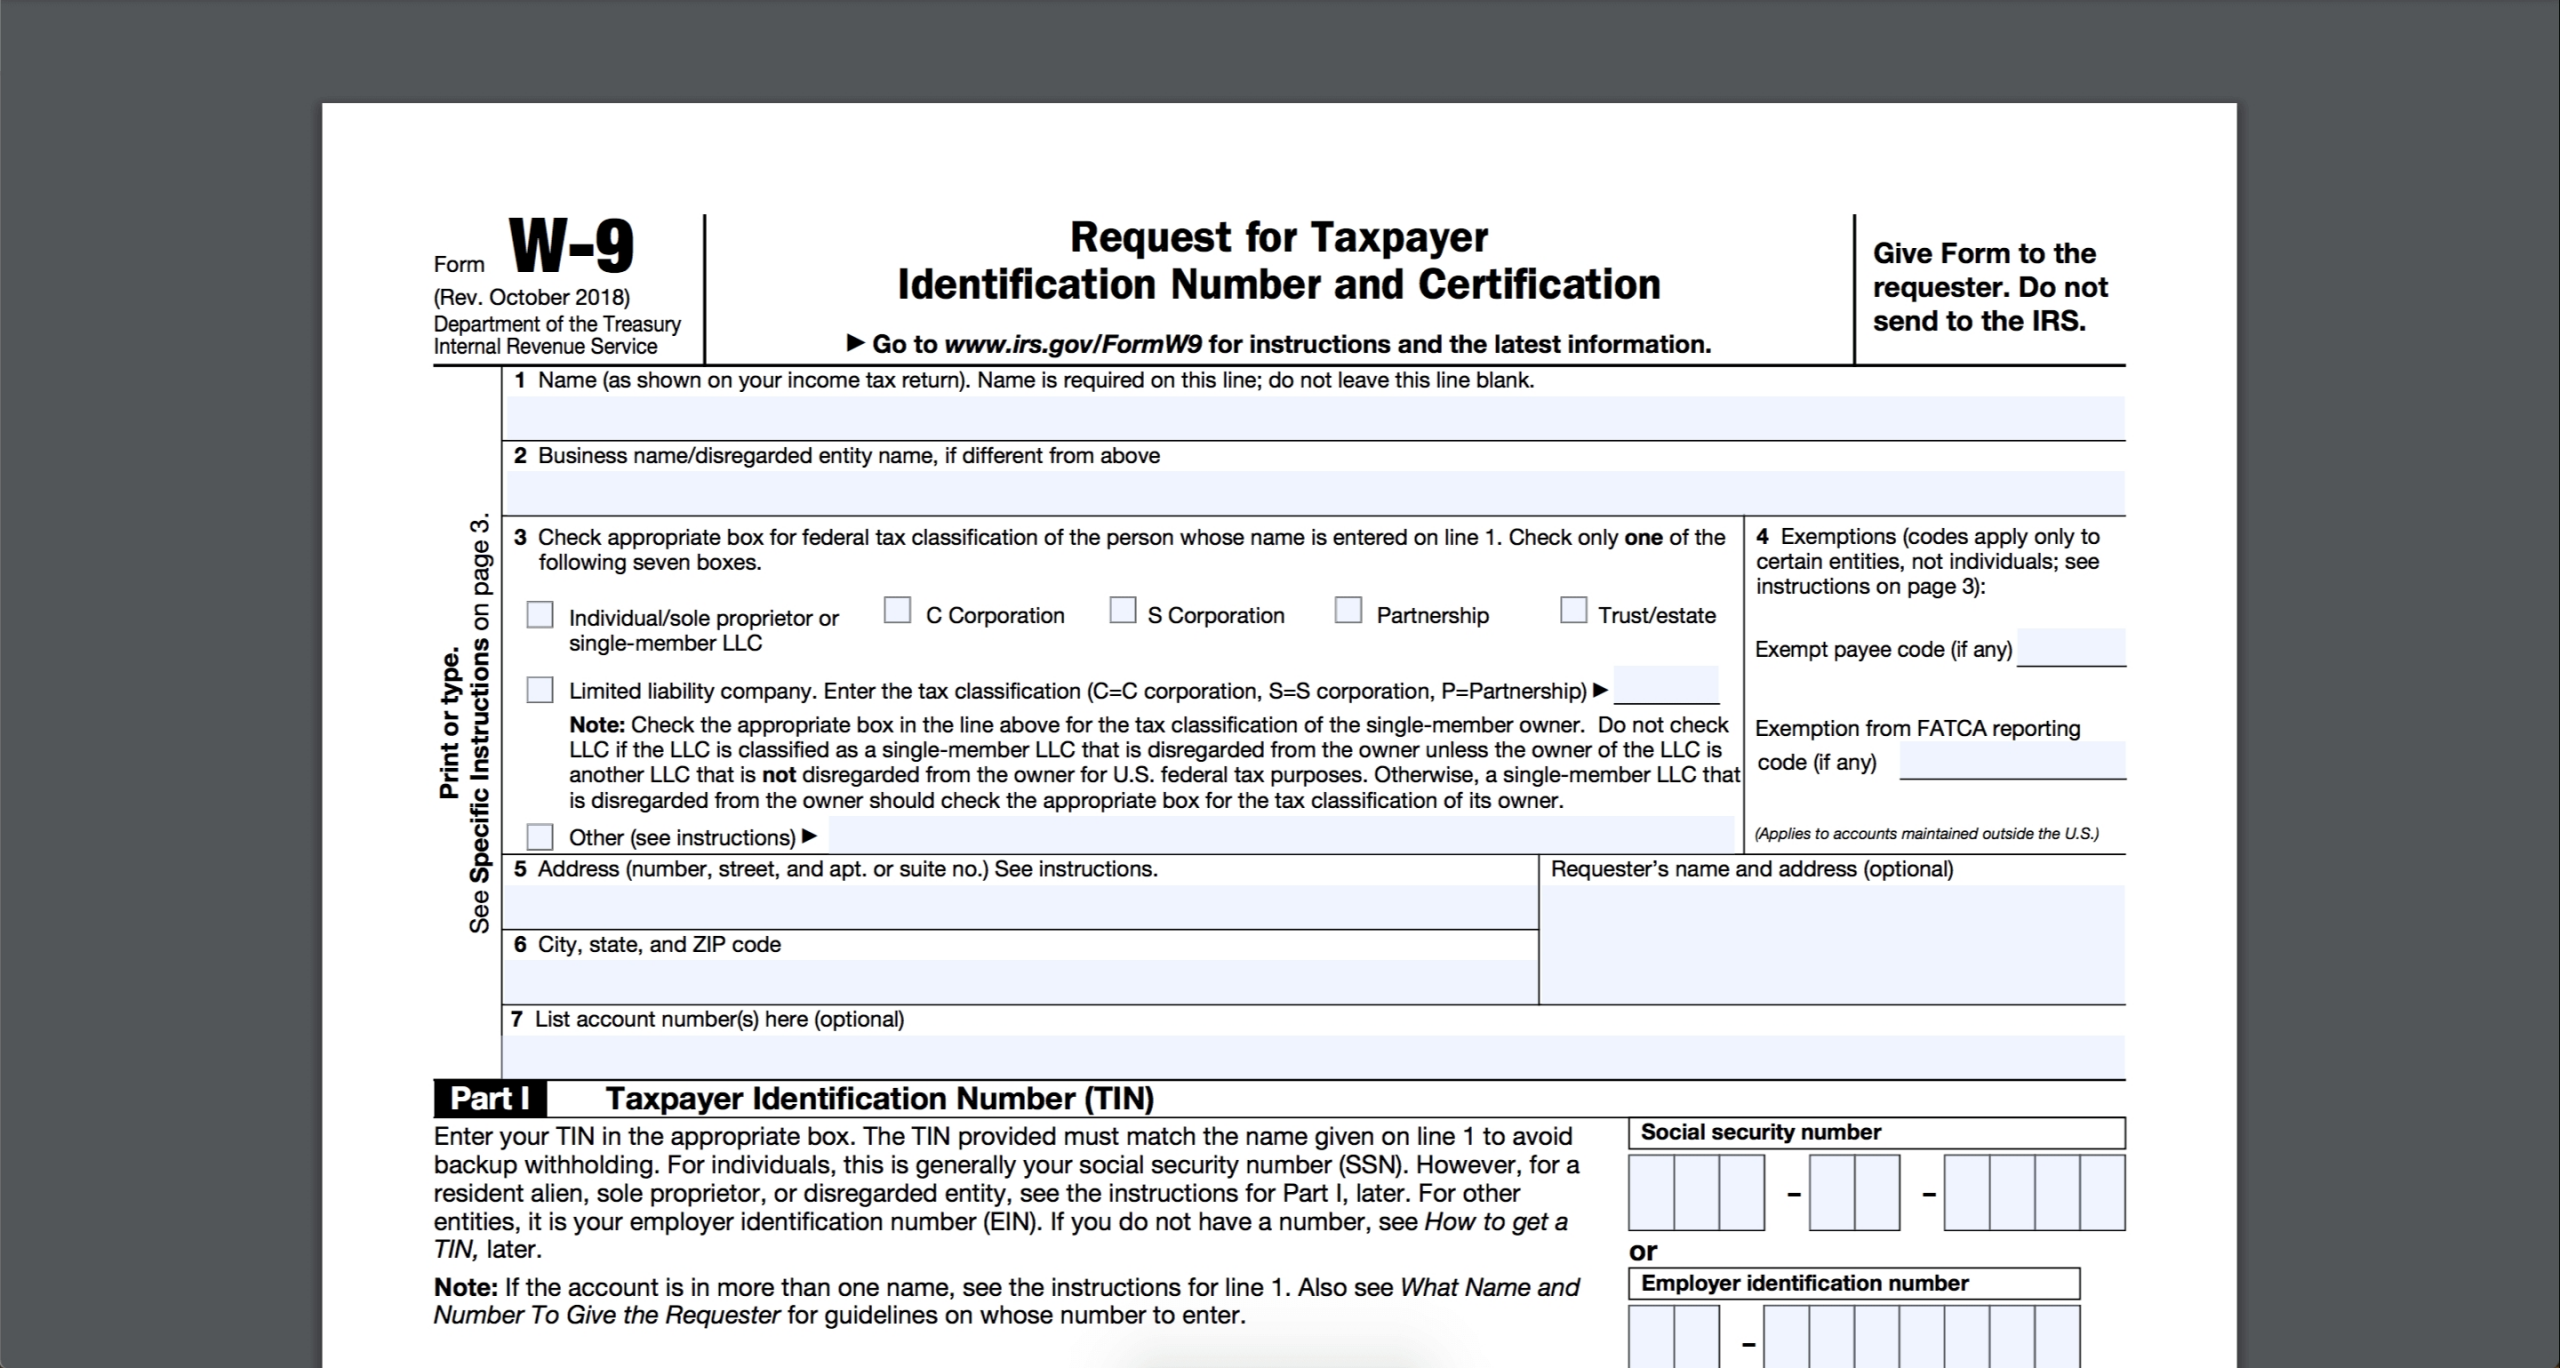 How To Fill Out And Sign Your W-9 Form Online-2021 Printable W 9 Form Free